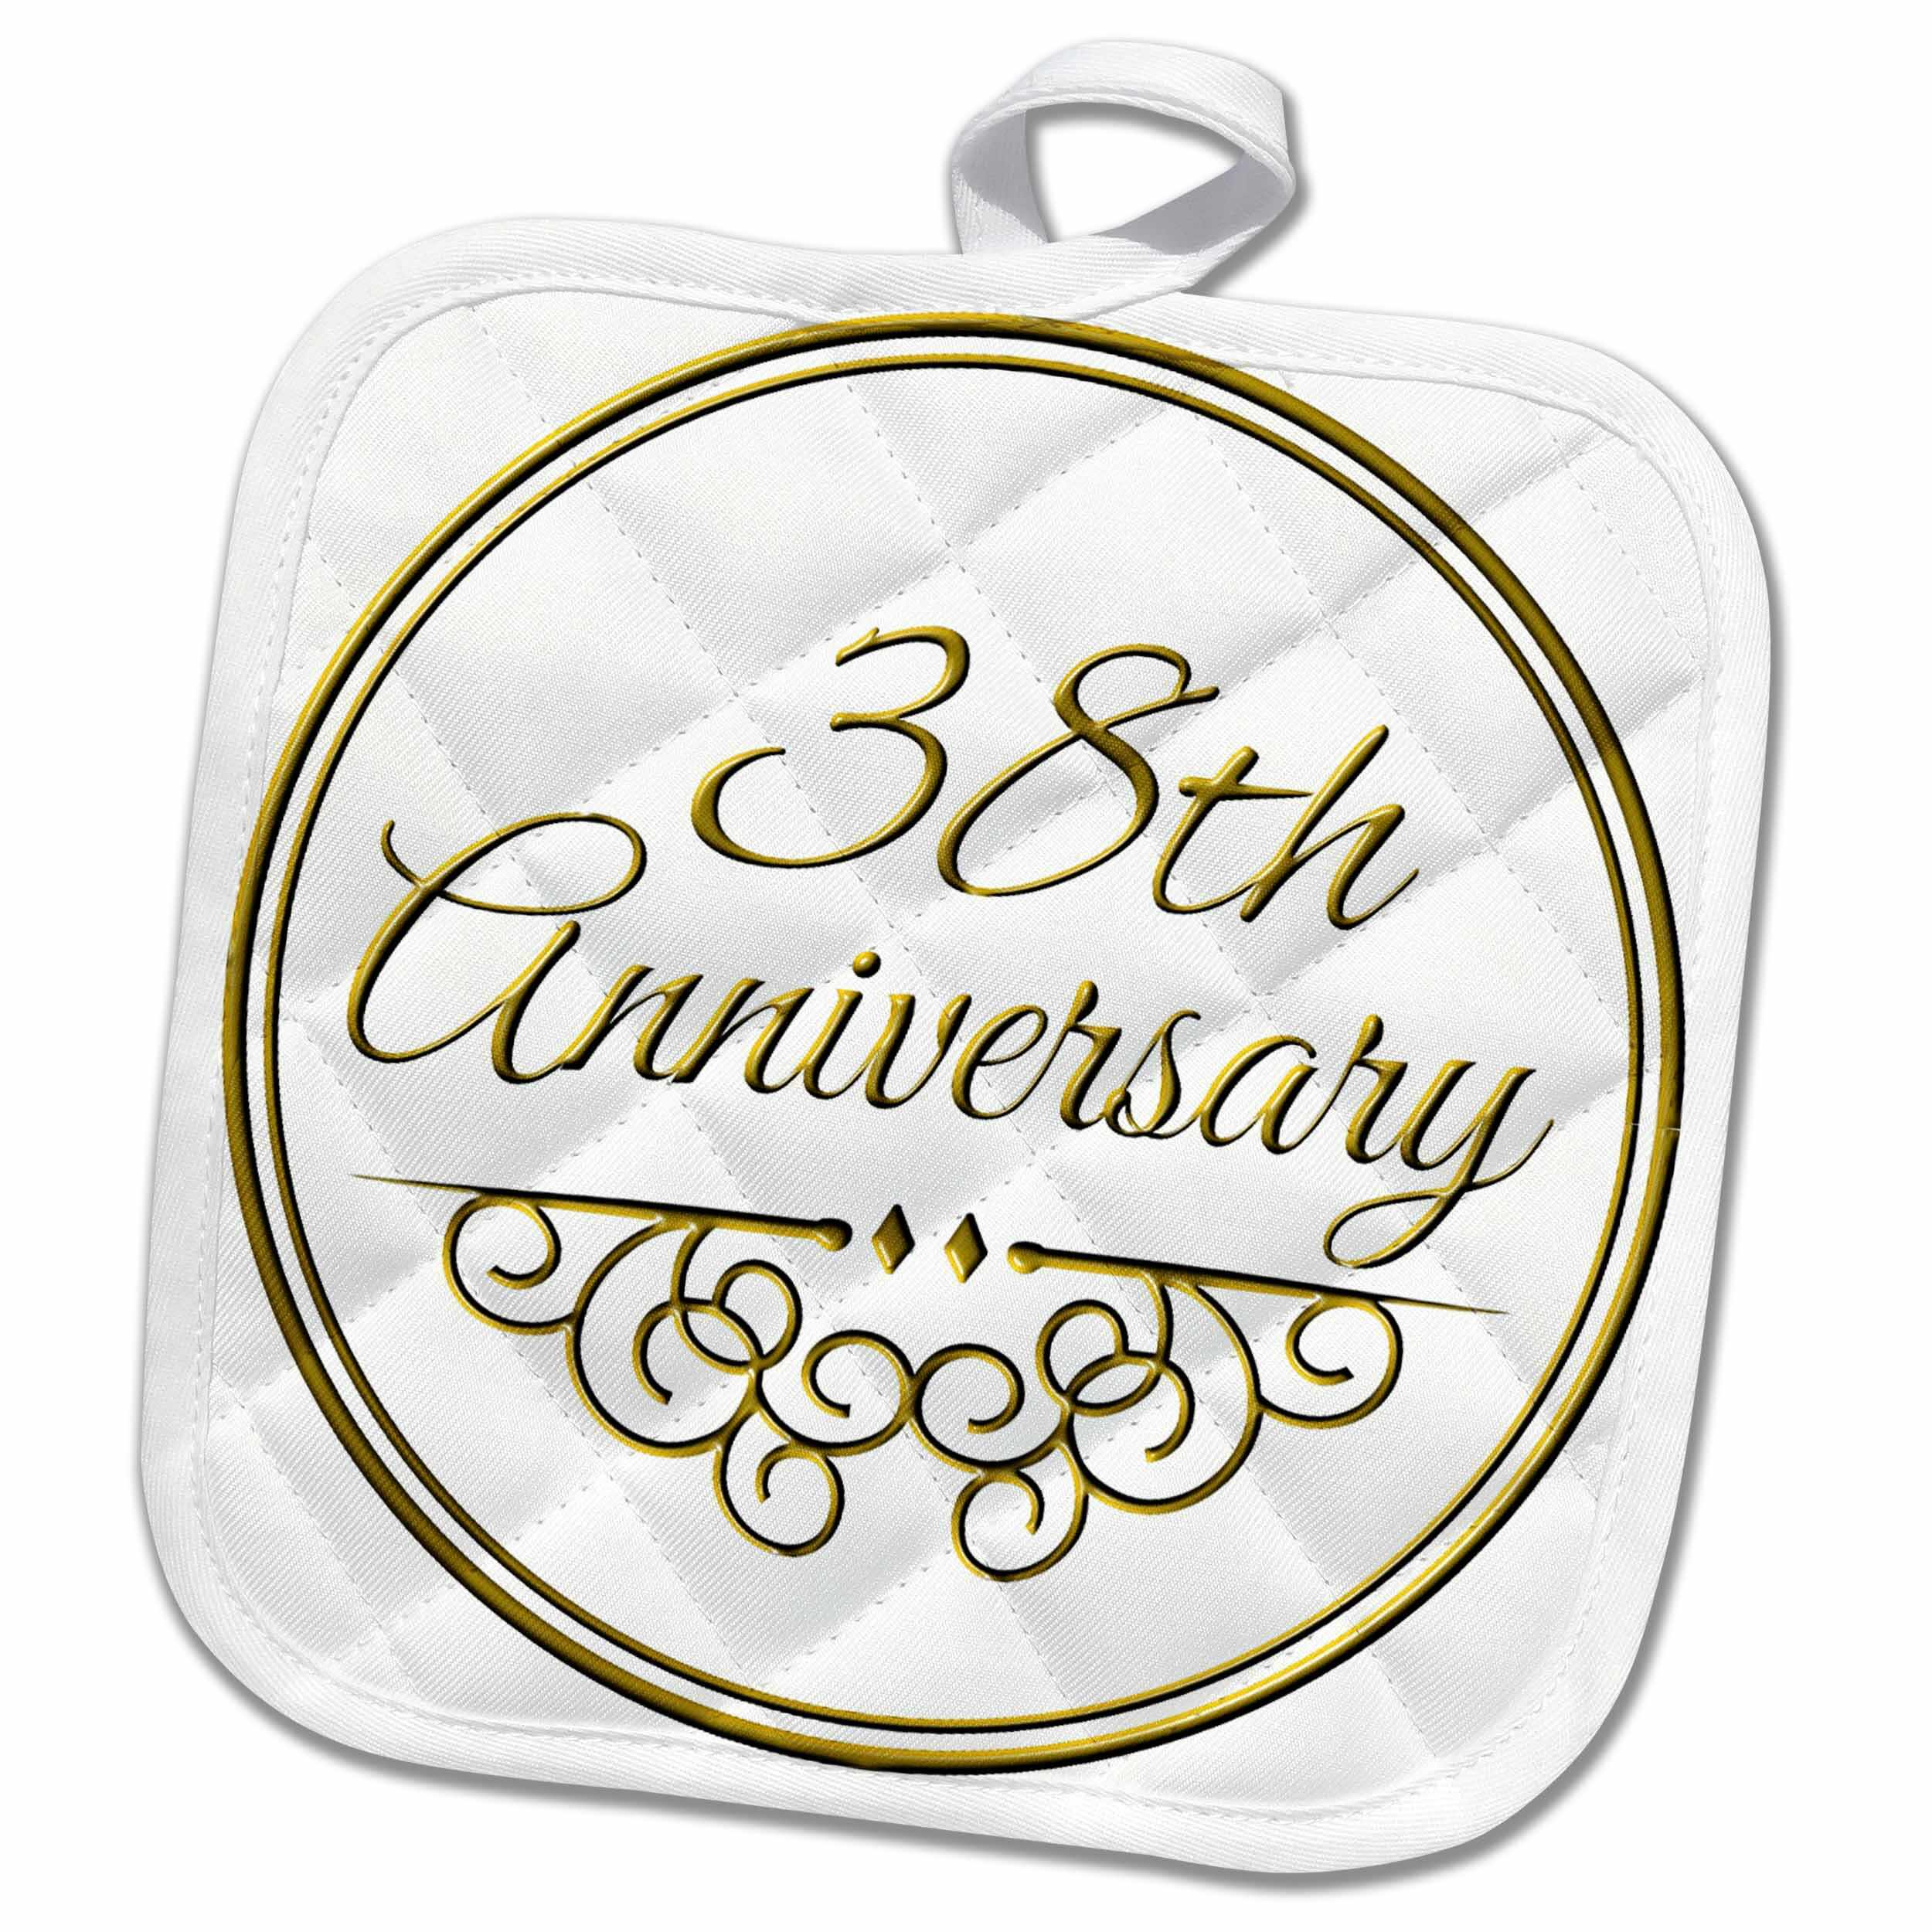 3dRose 38th Anniversary Gift Text for Celebrating Wedding Anniversaries 38 Years Married Together Pot Holder | Wayfair  sc 1 st  Wayfair & 3dRose 38th Anniversary Gift Text for Celebrating Wedding ...